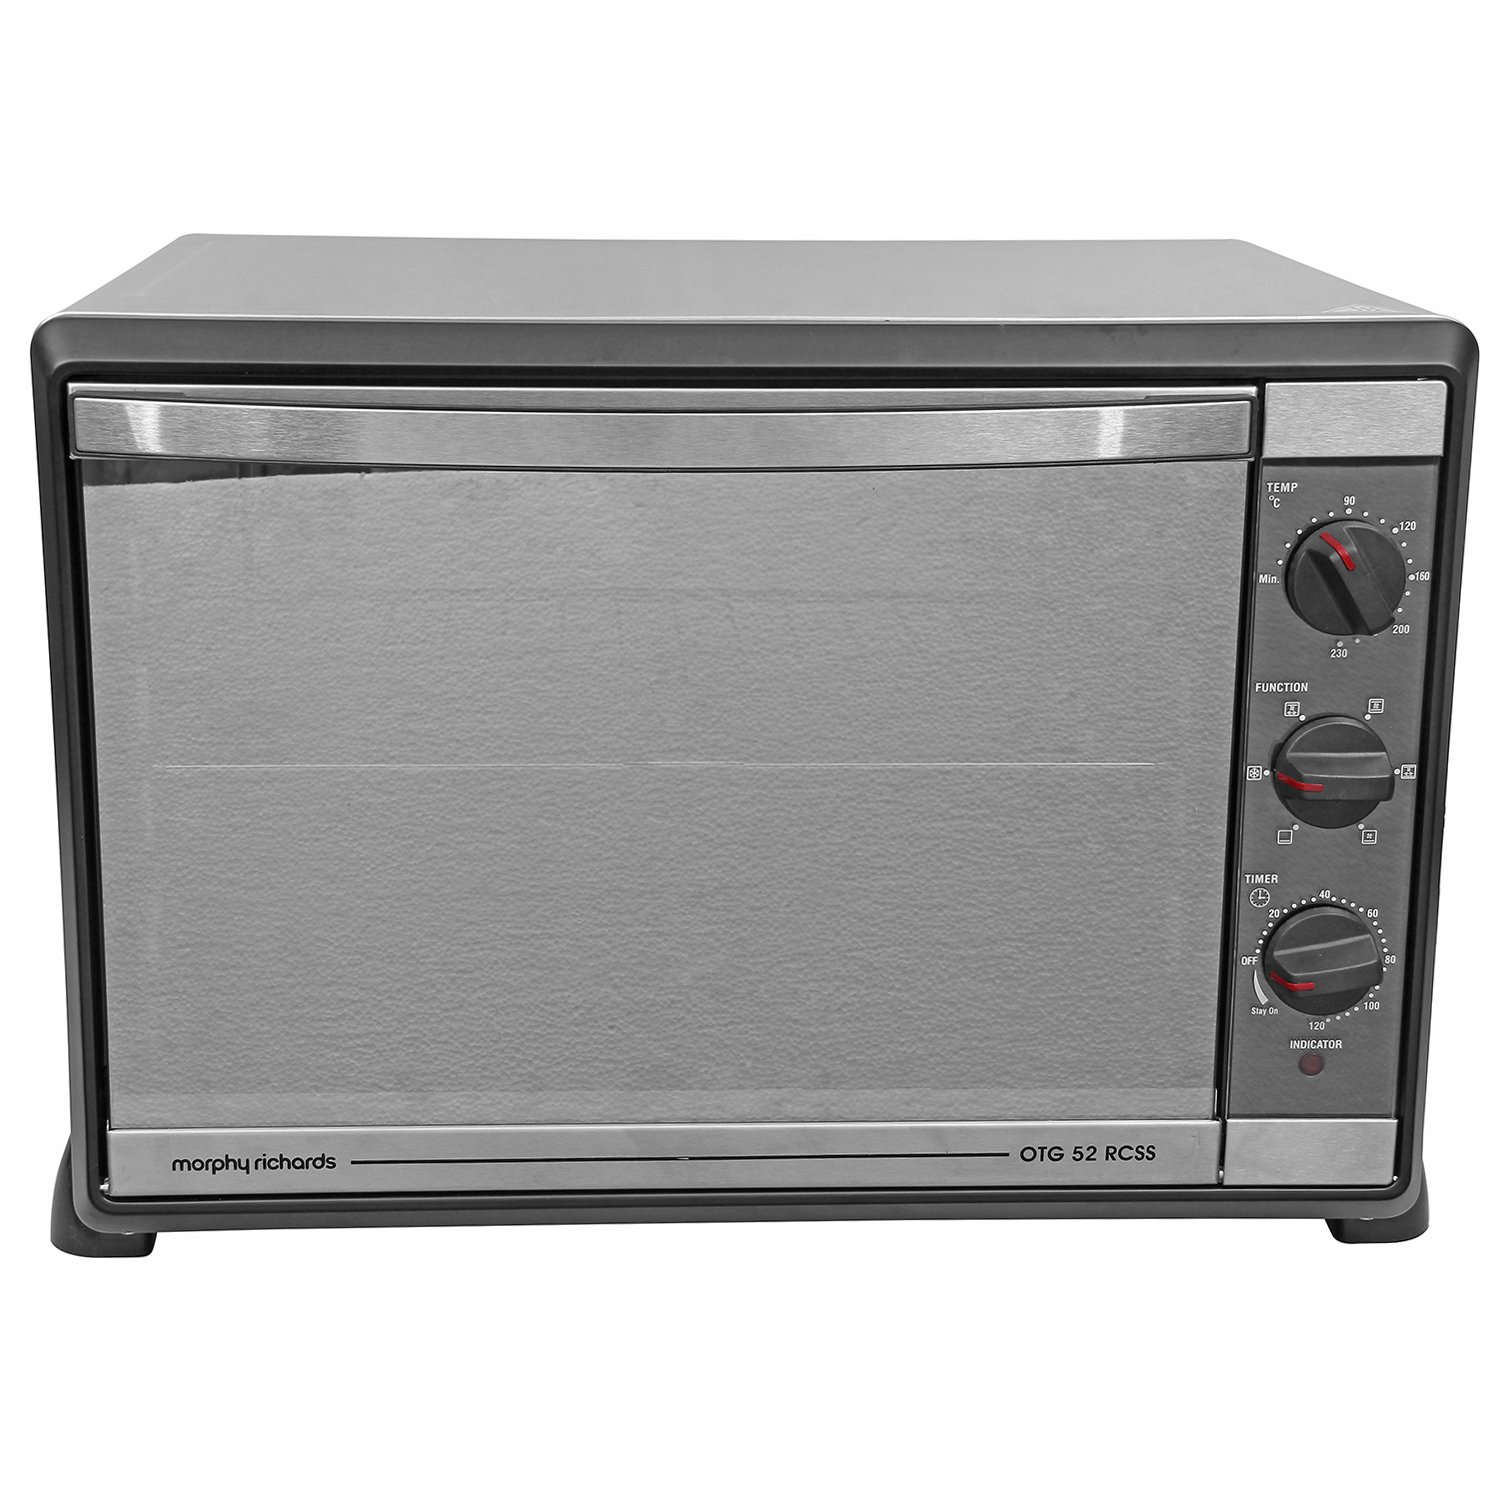 ovens dp slice beach pizza best amazon steel stainless sellers reviewed ultimate reviews hamilton com cuisinart countertop toasters and combo toastation black rated toaster microwave